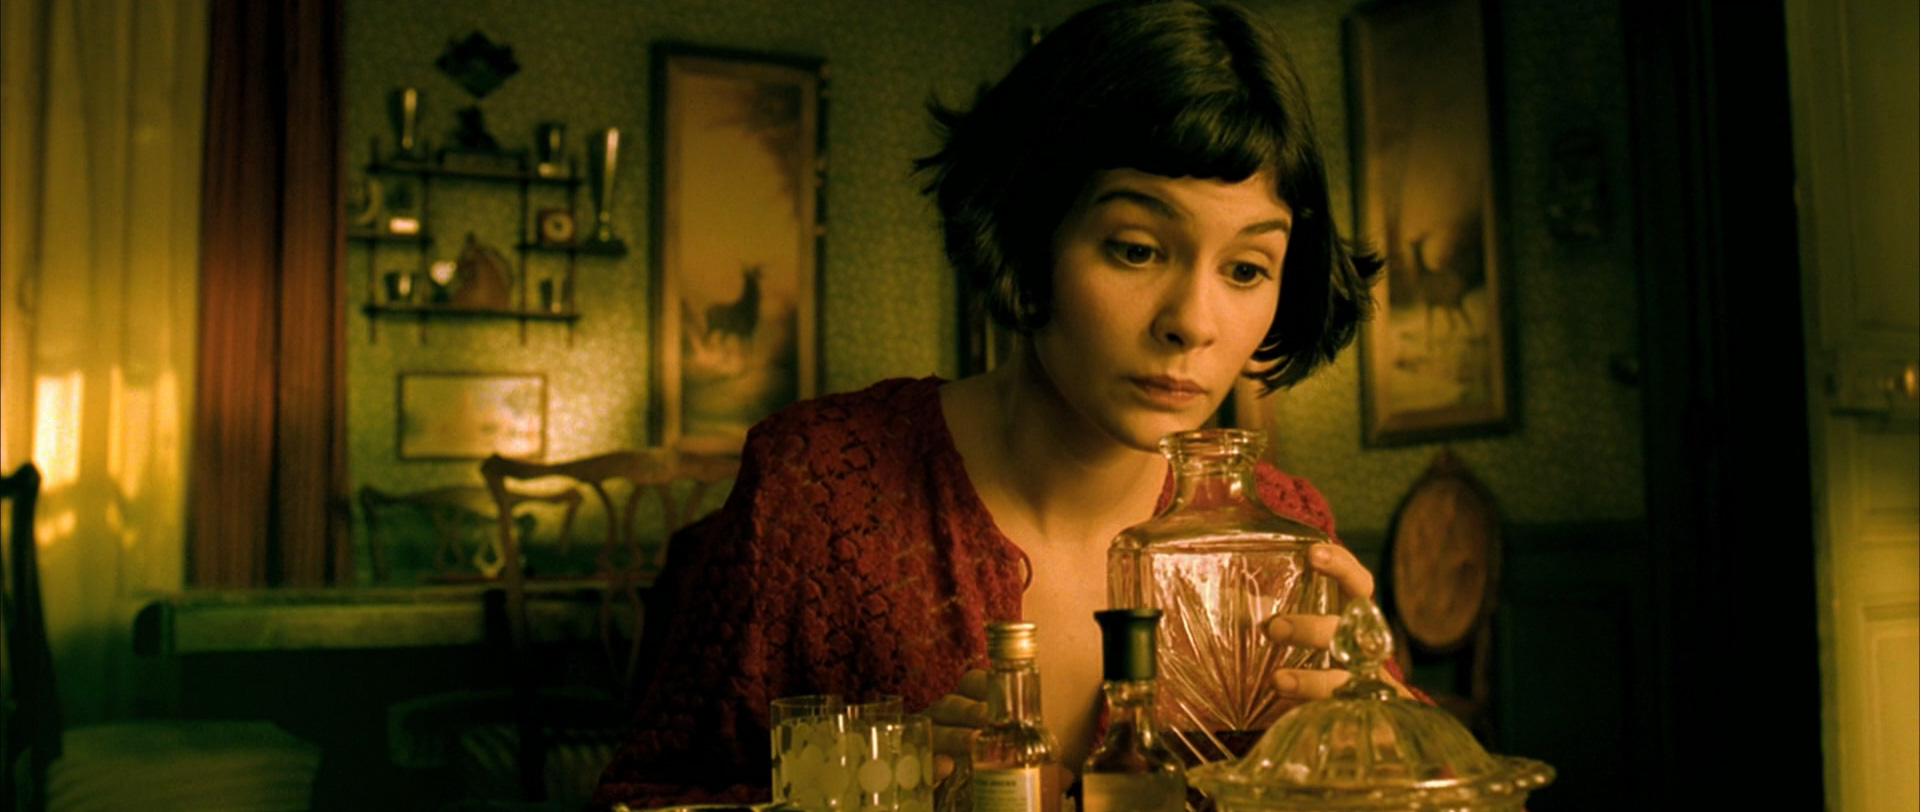 2001: Amelie